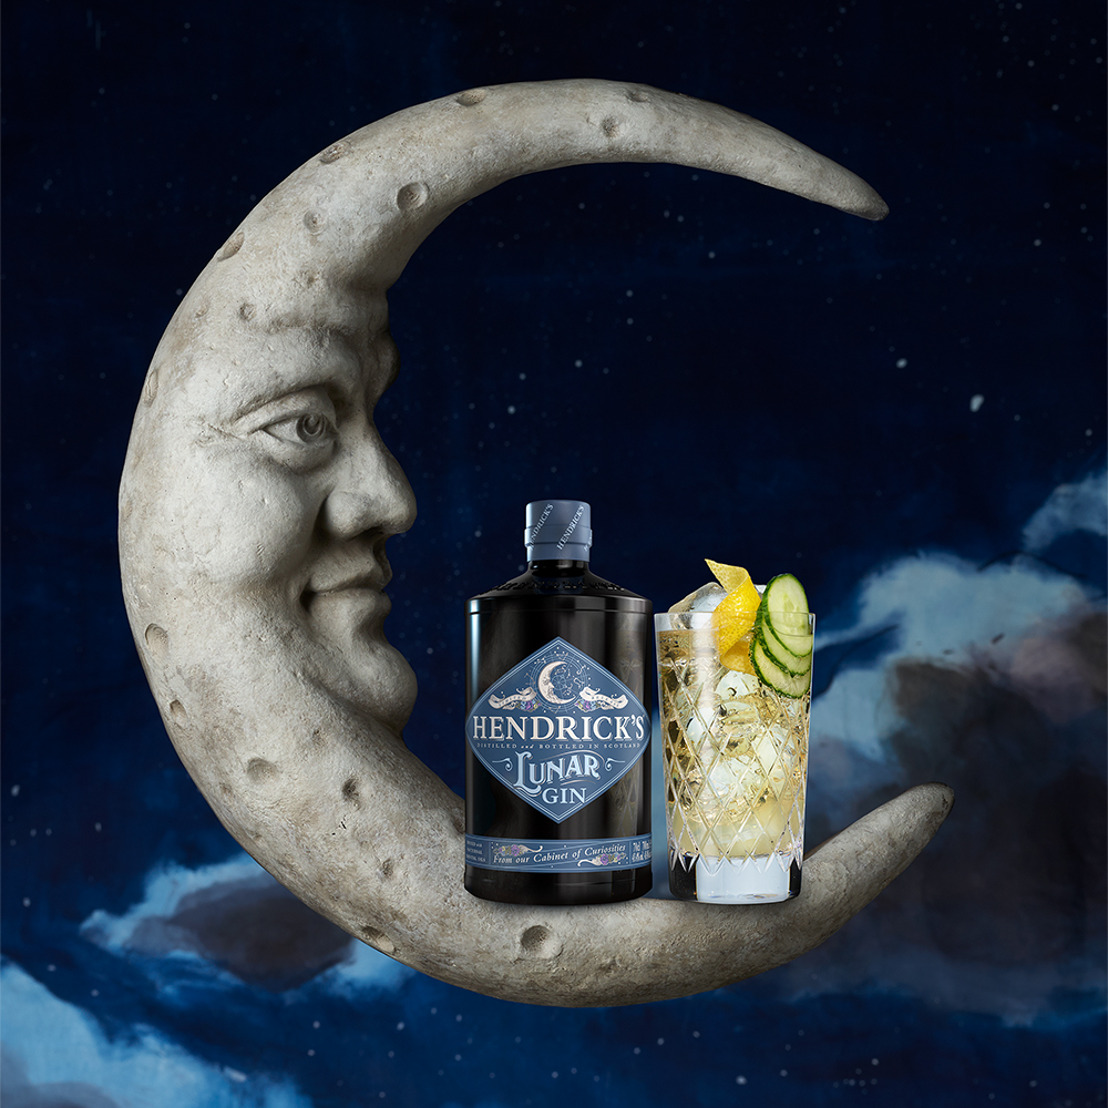 """HENDRICK'S GIN BOTTLES THE COSMIC SENSATION OF MOONLIGHT IN ITS NEWEST LIMITED RELEASE GIN, """"HENDRICK'S LUNAR"""""""